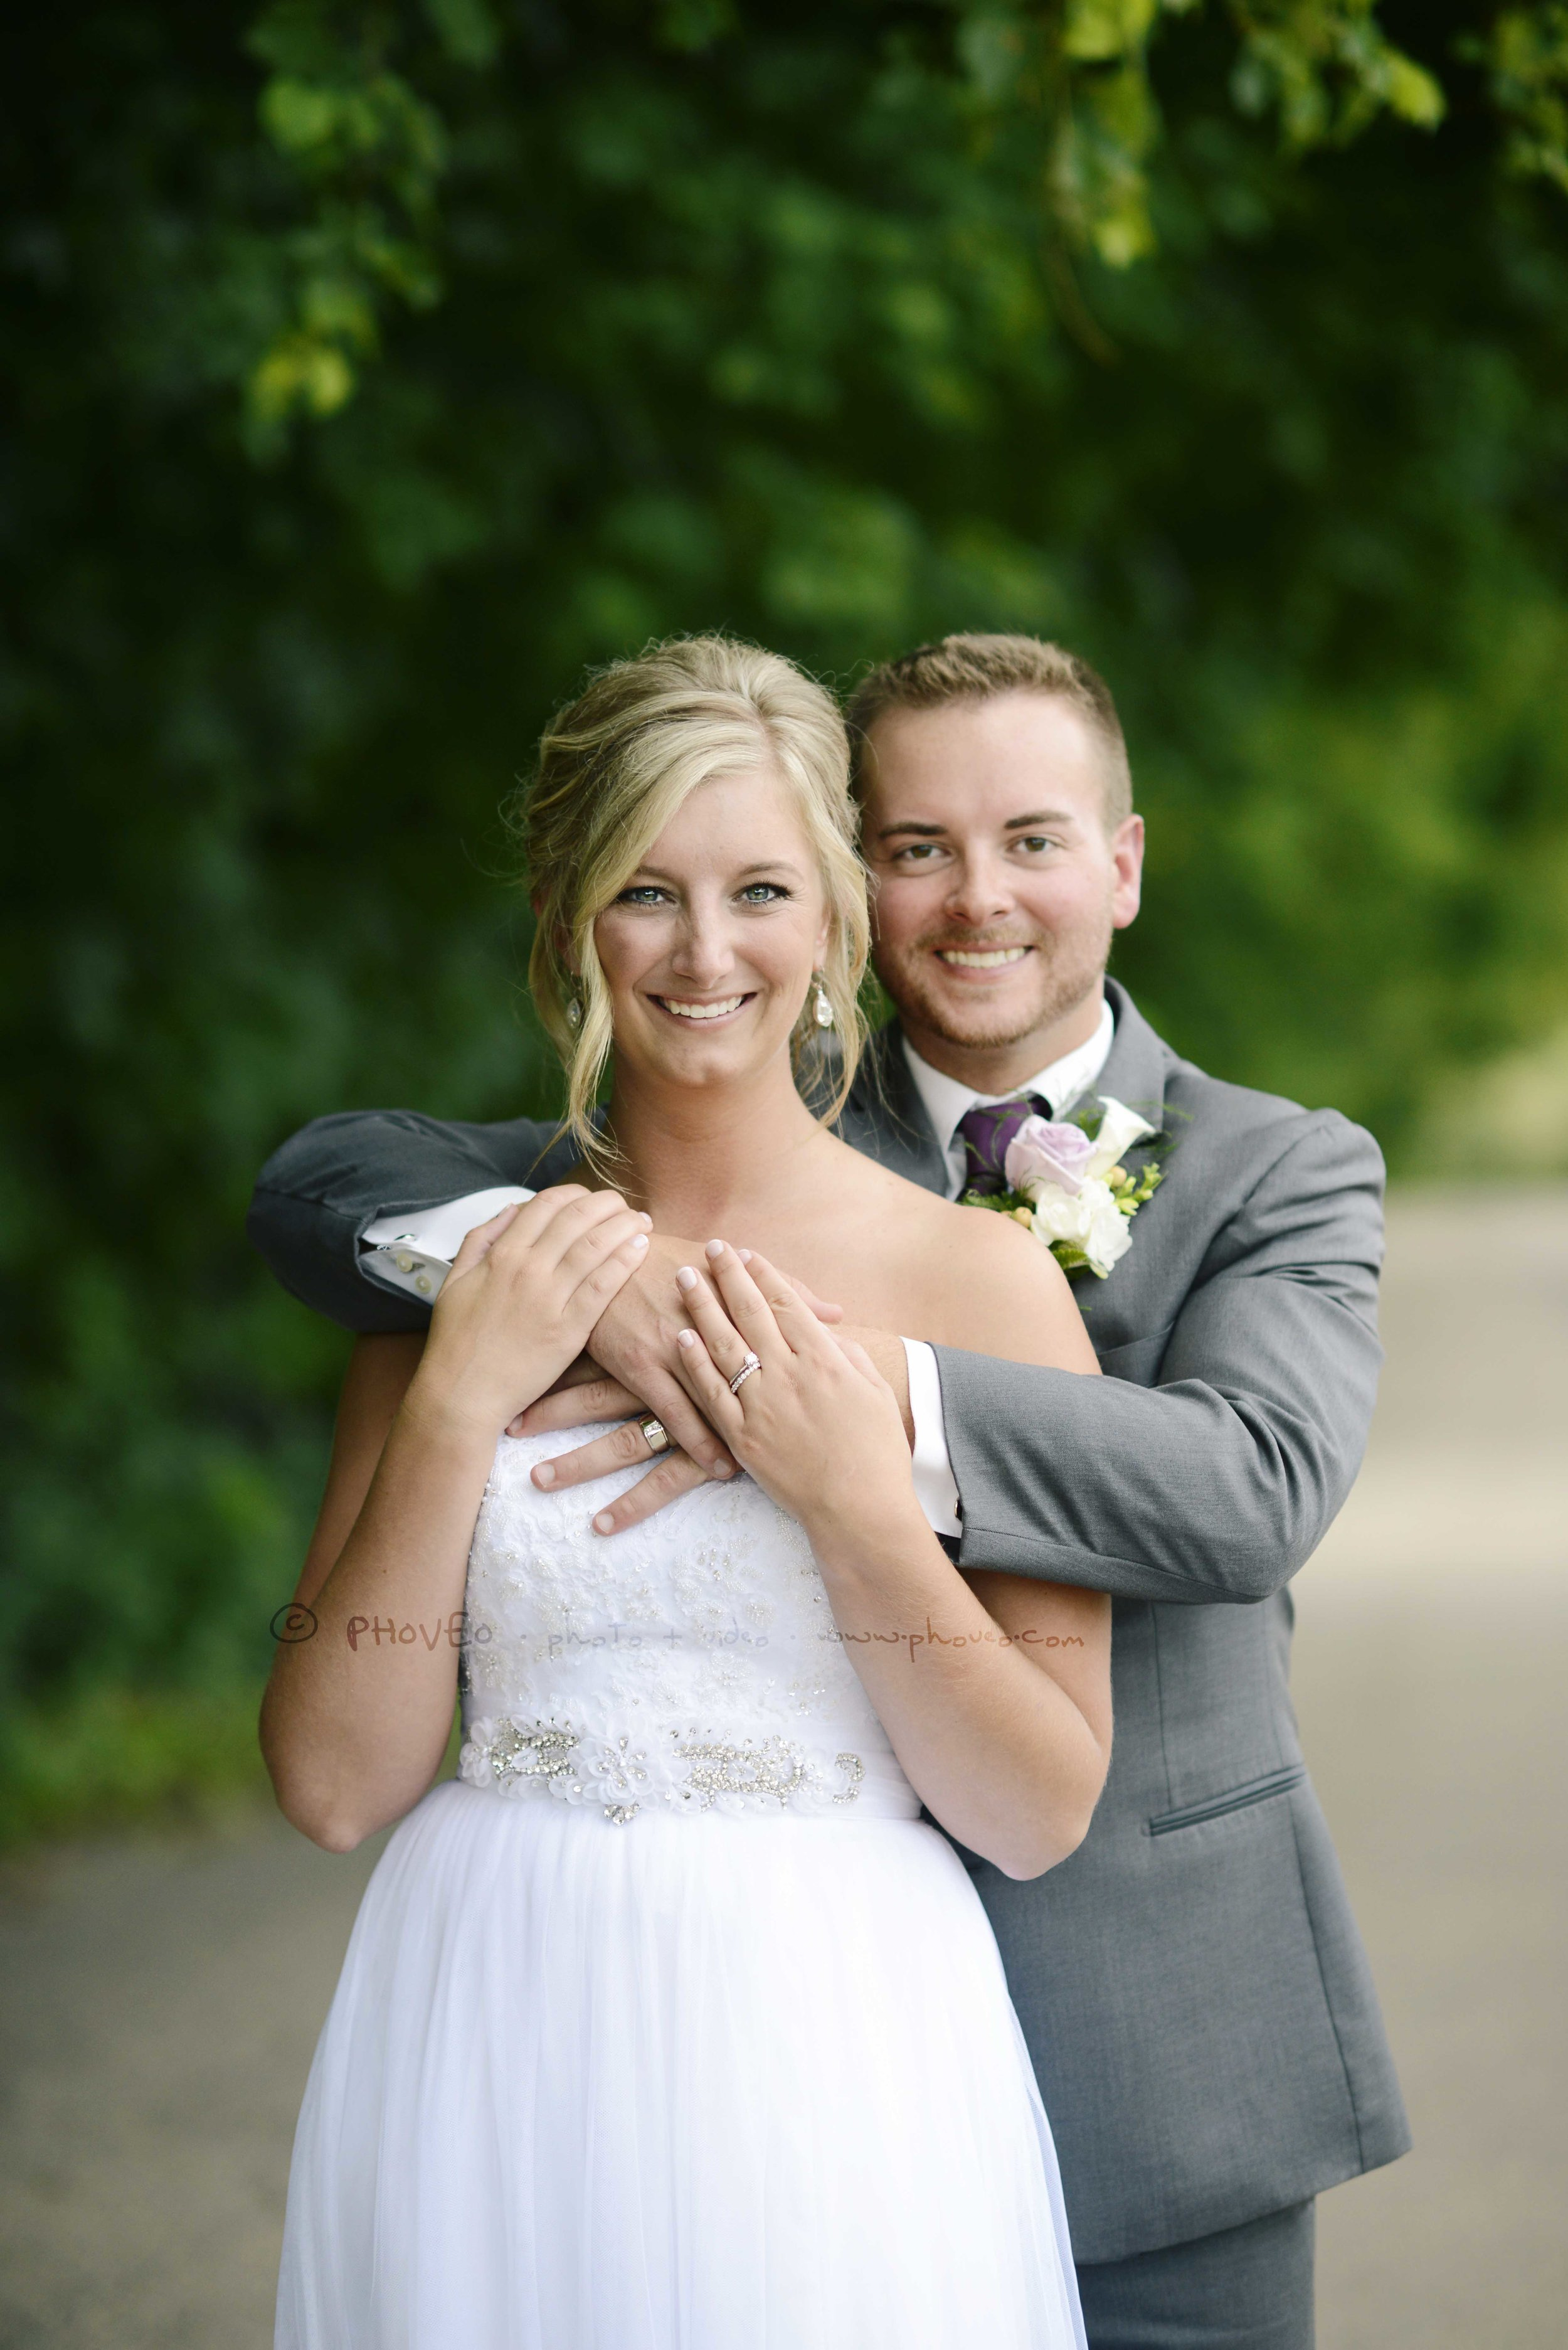 WM_20160826_Katelyn+Tony_56.jpg